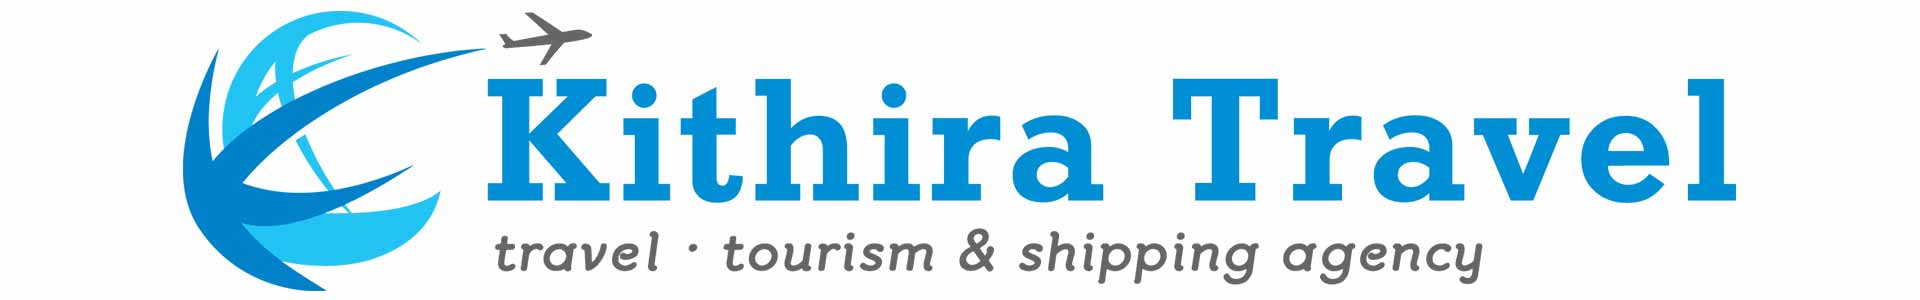 kithira travel logo